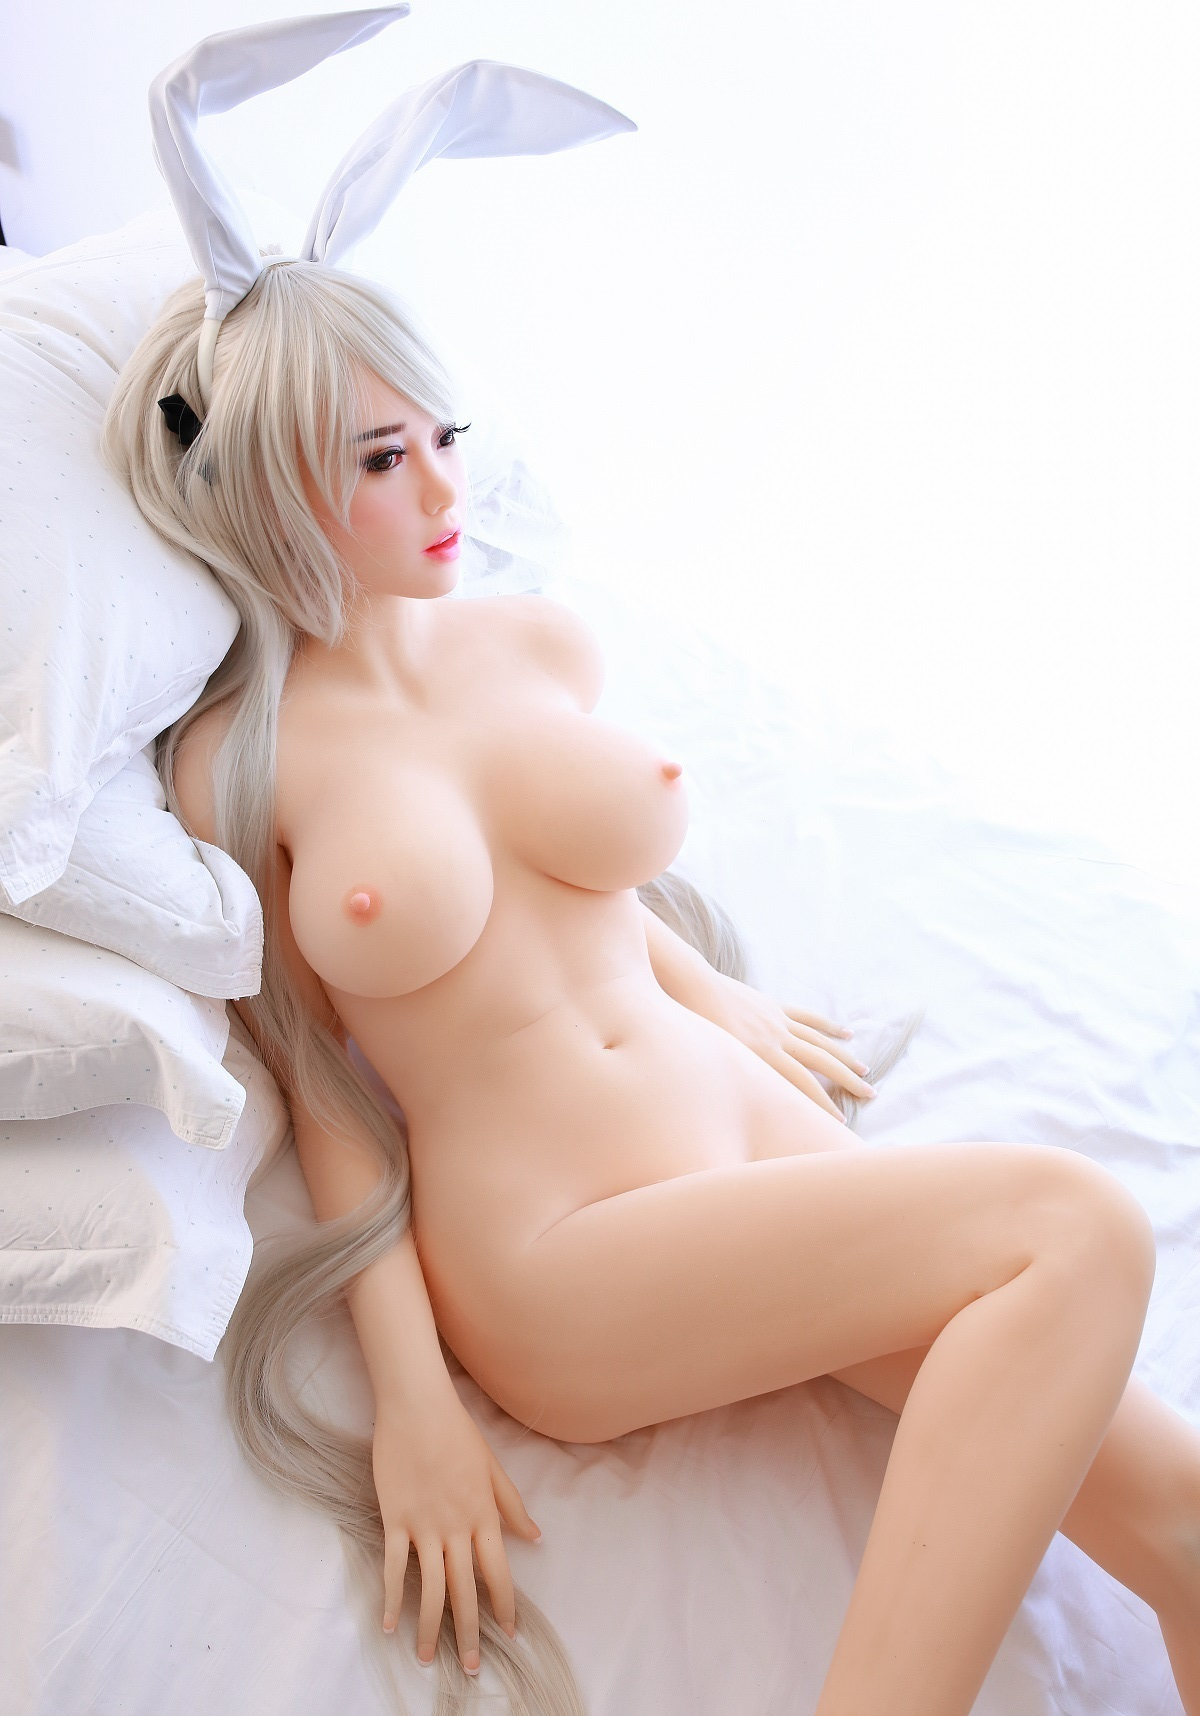 Asian sex dolls for sale